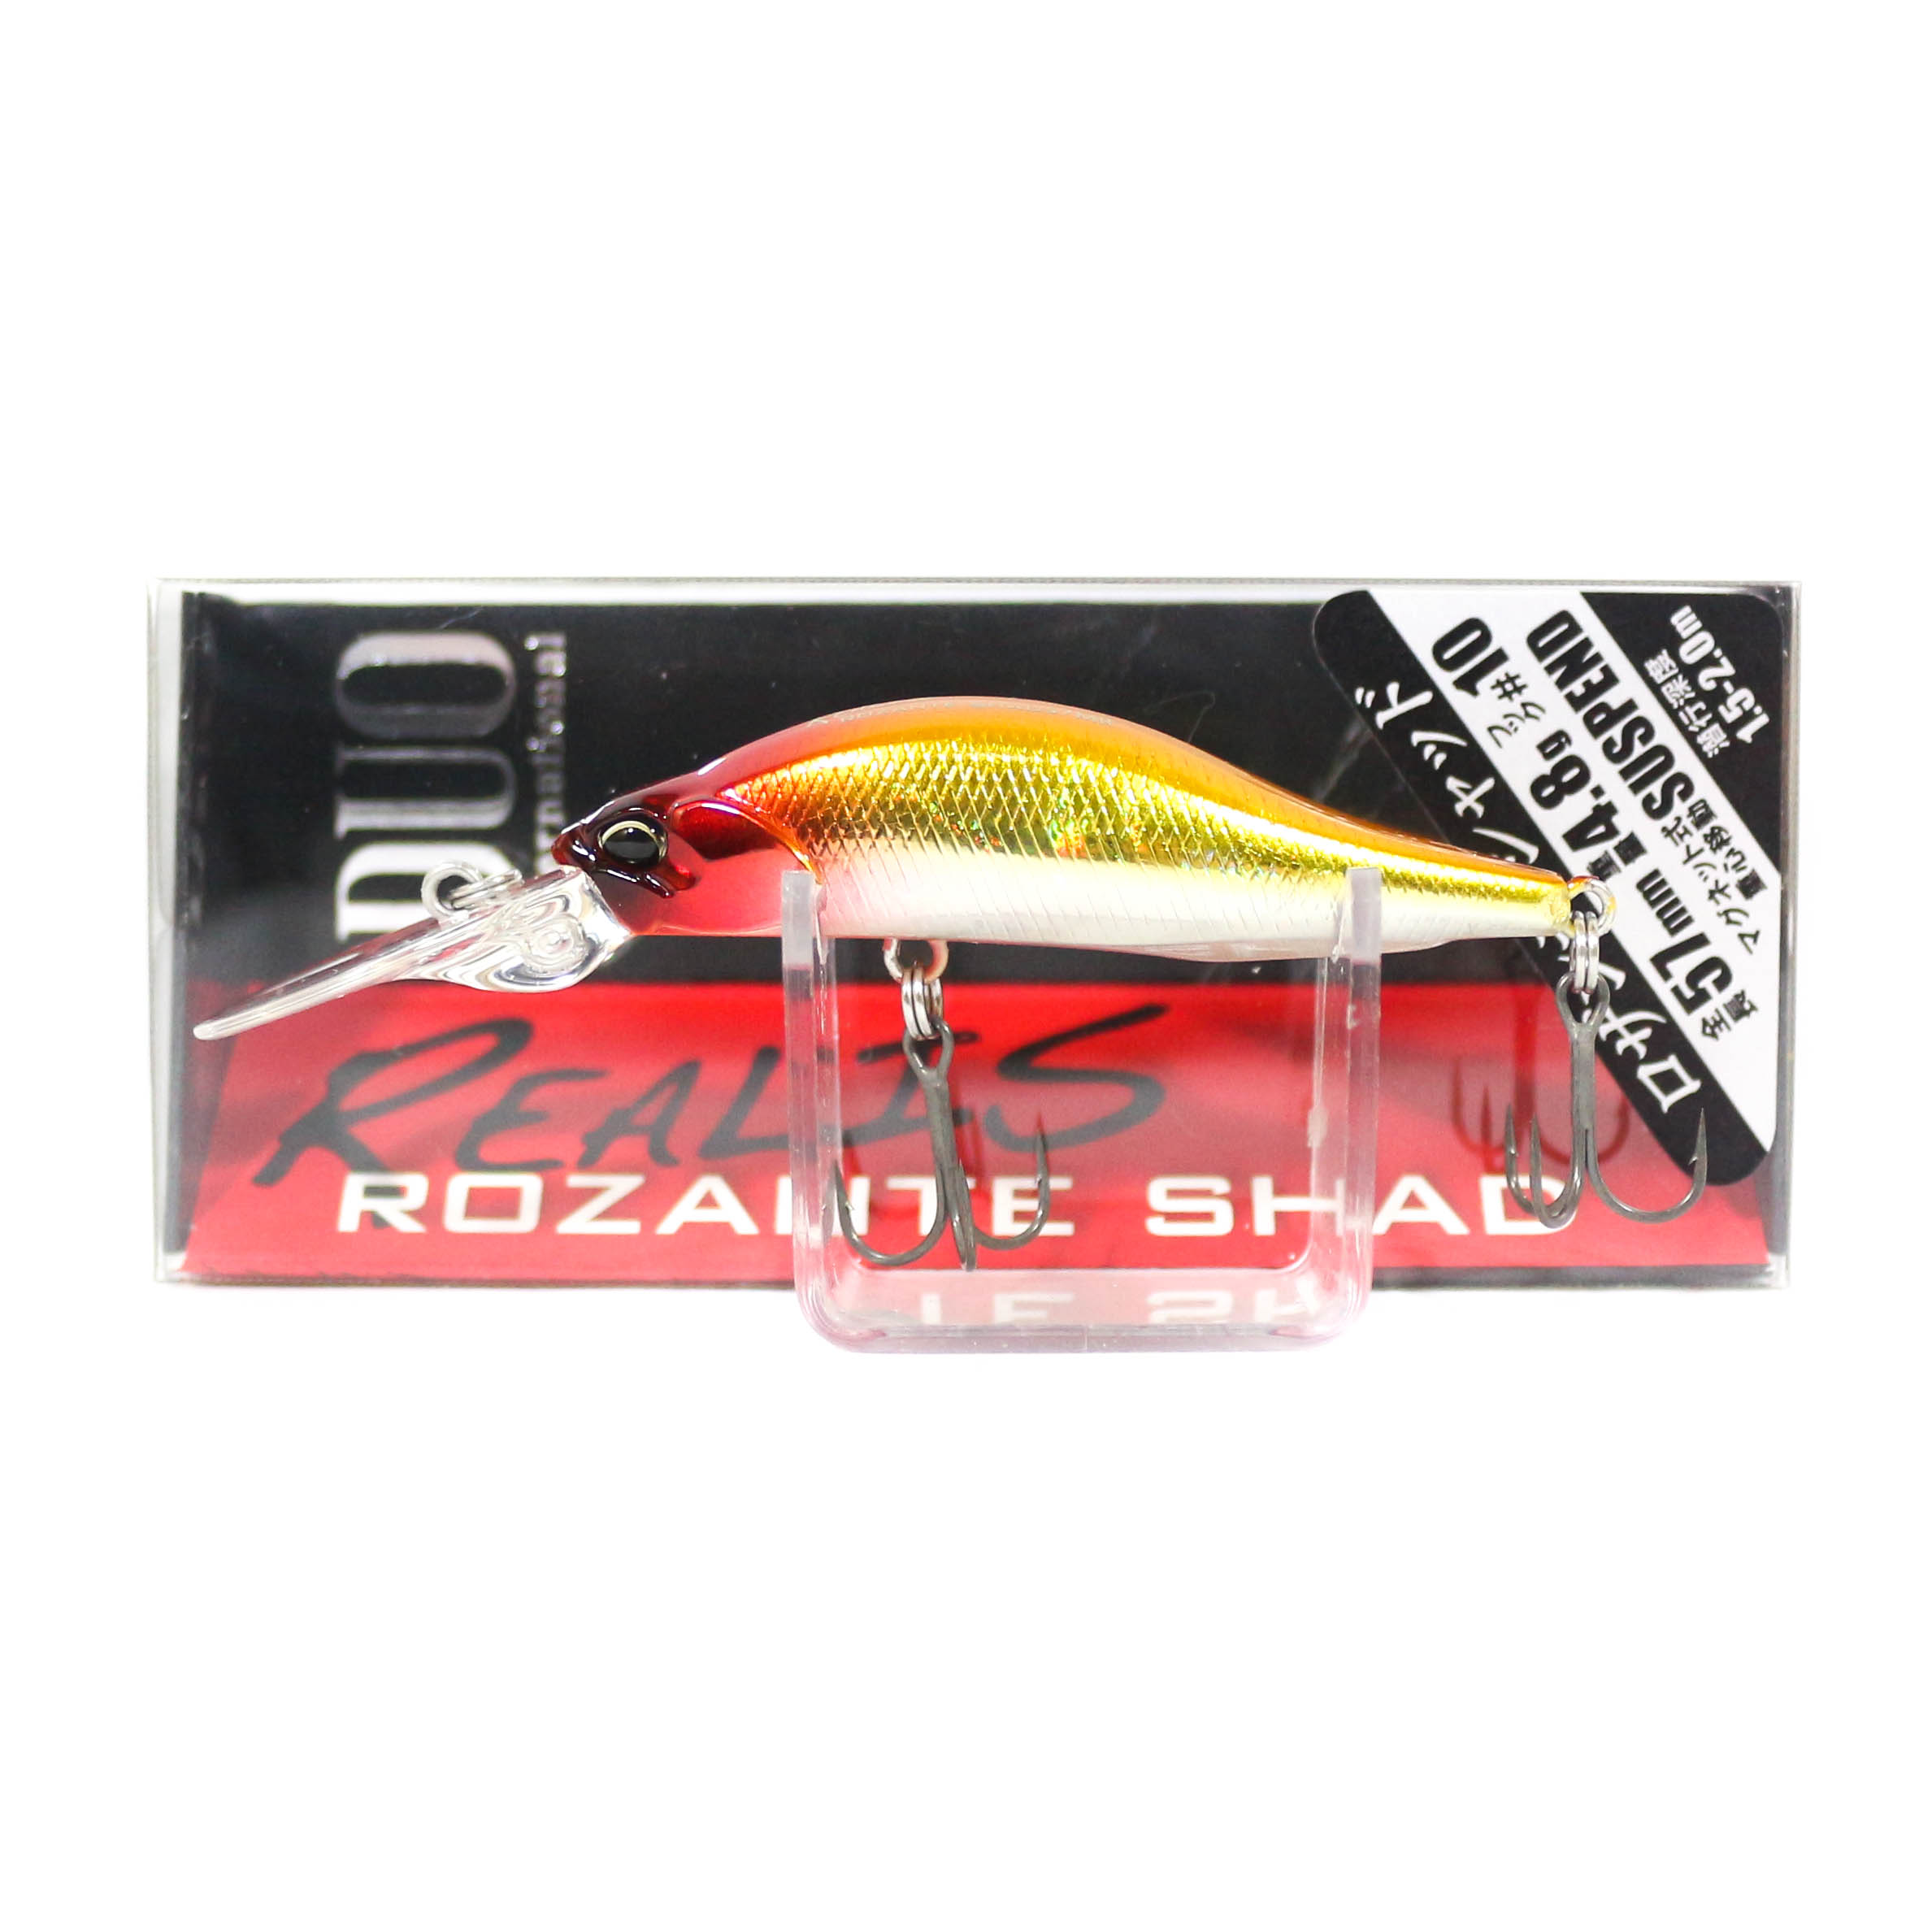 Duo Realis Rozante Shad 57 MR Suspend Lure ADA3033 (9201)